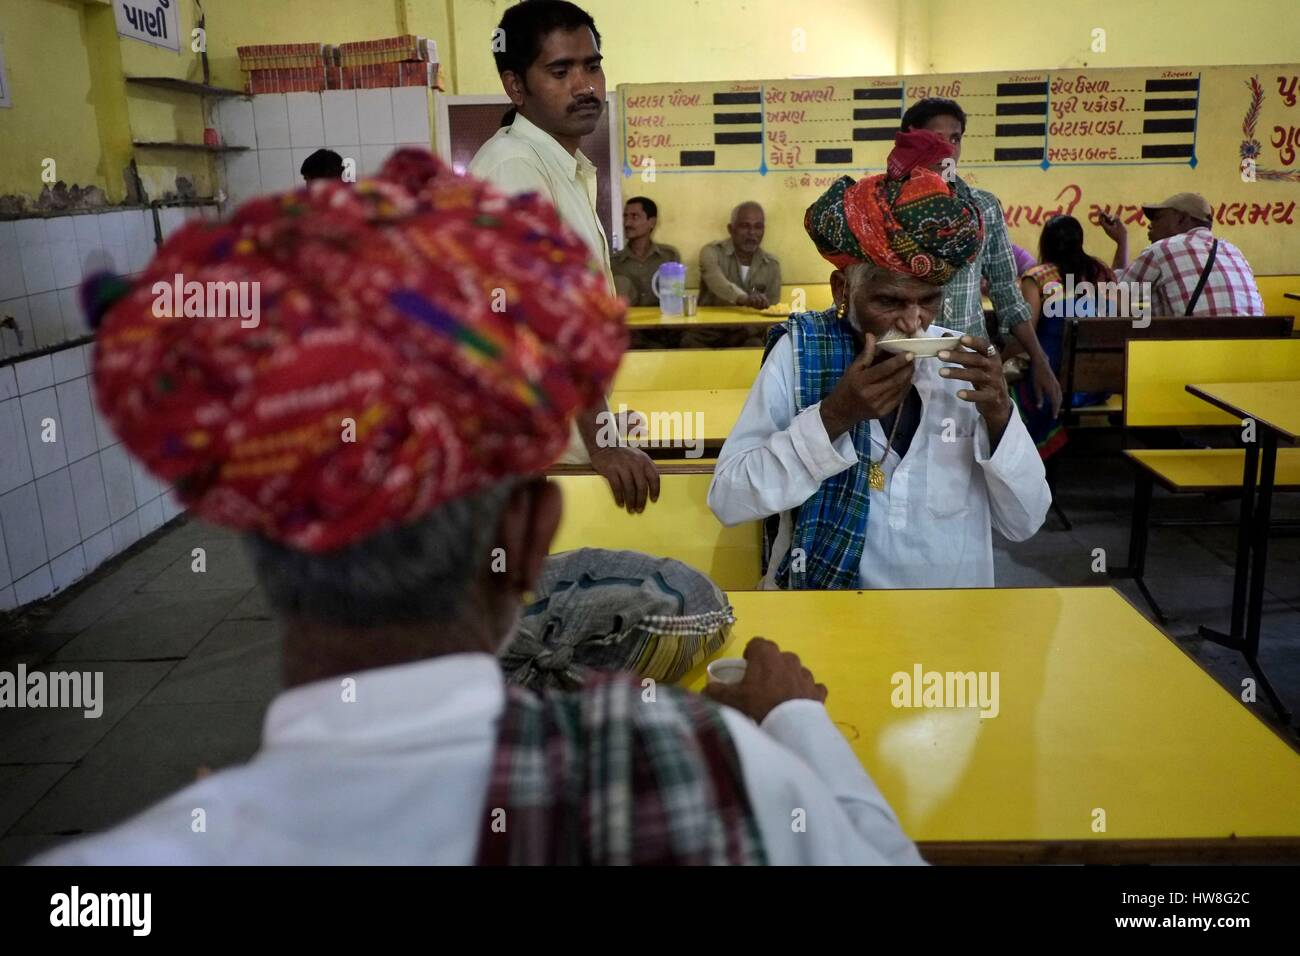 India, Gujarat State, Ahmedabad, listed as World Heritage by UNESCO, two men in turbans in the restaurant of a bus - Stock Image